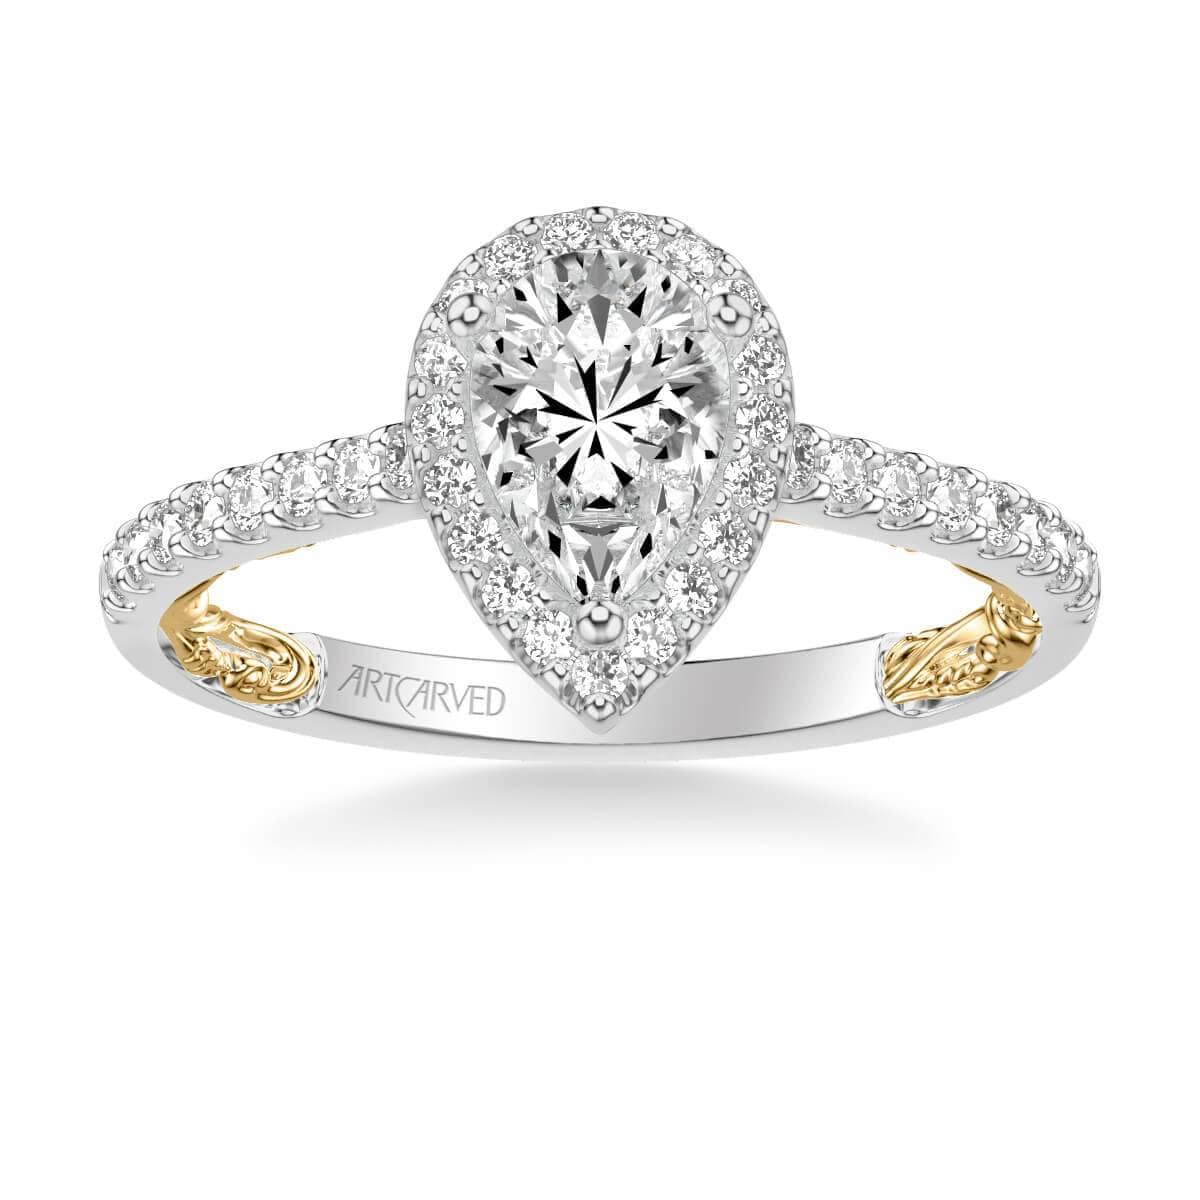 Delaney Lyric Collectin Classic Pear Halo Diamond Engagement Ring